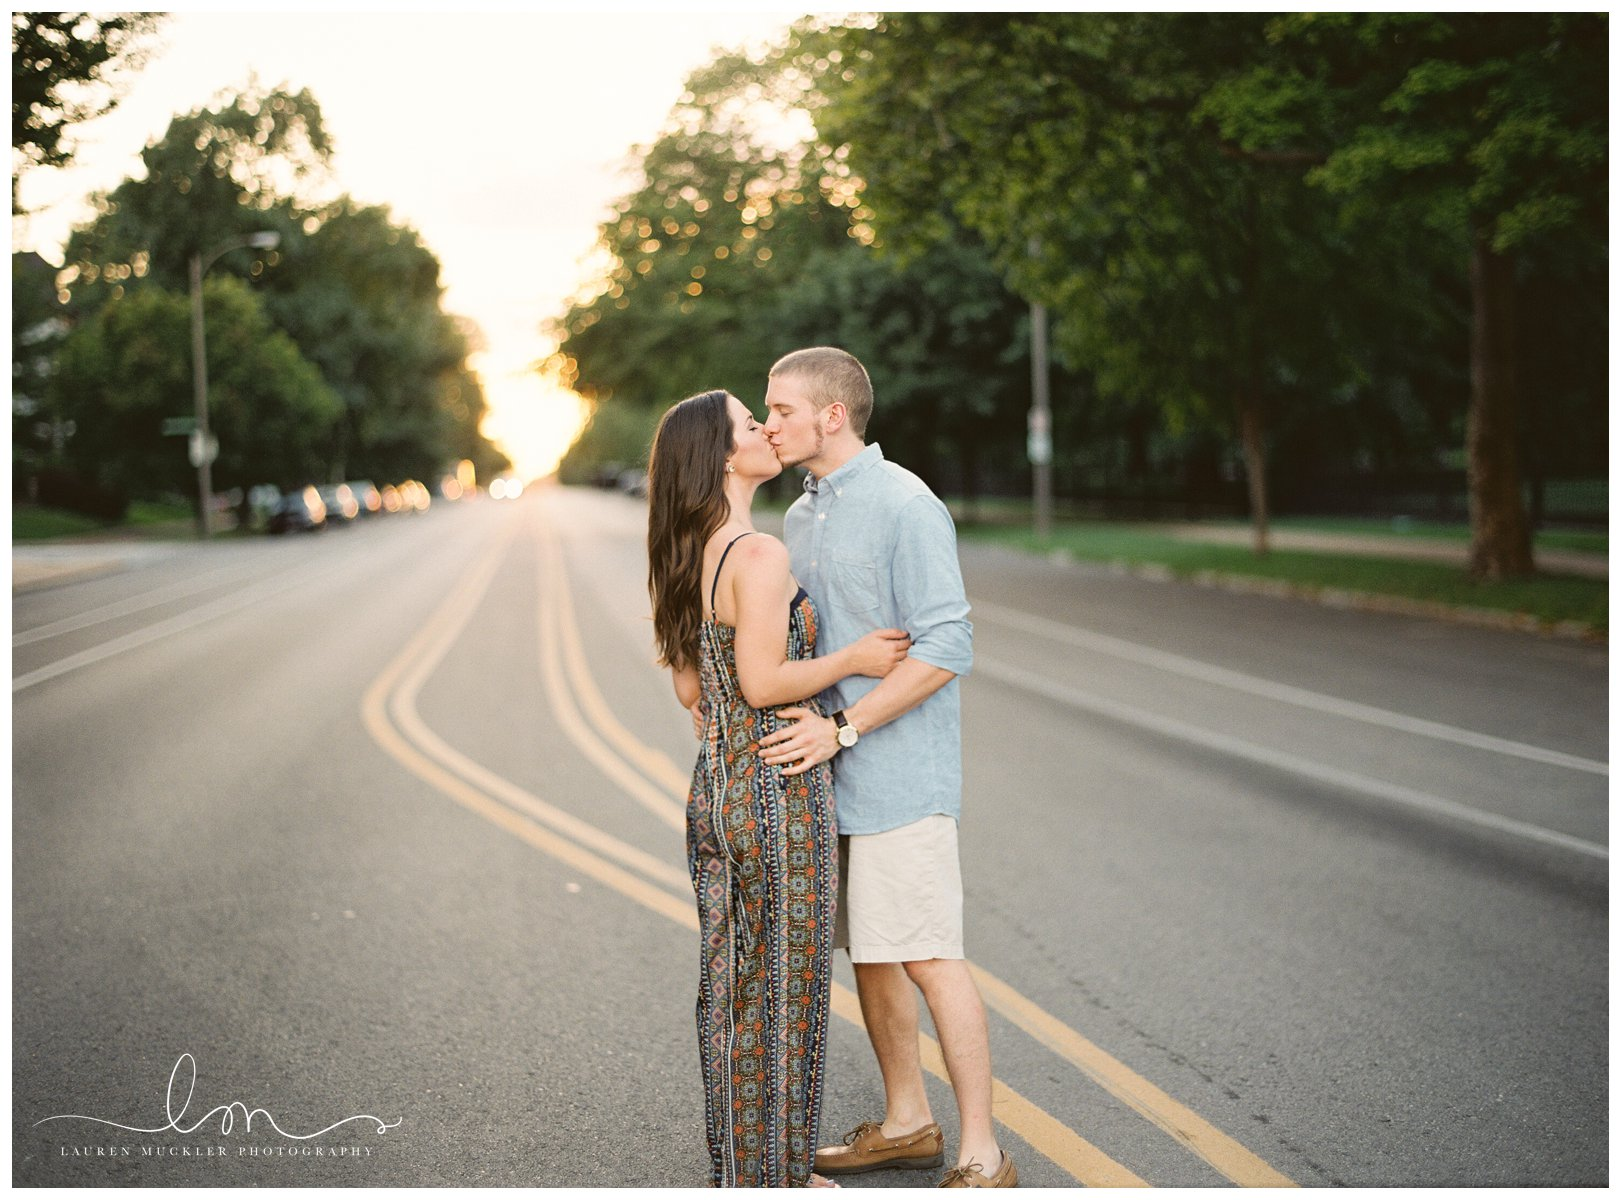 lauren muckler photography_fine art film wedding photography_st louis_photography_0713.jpg